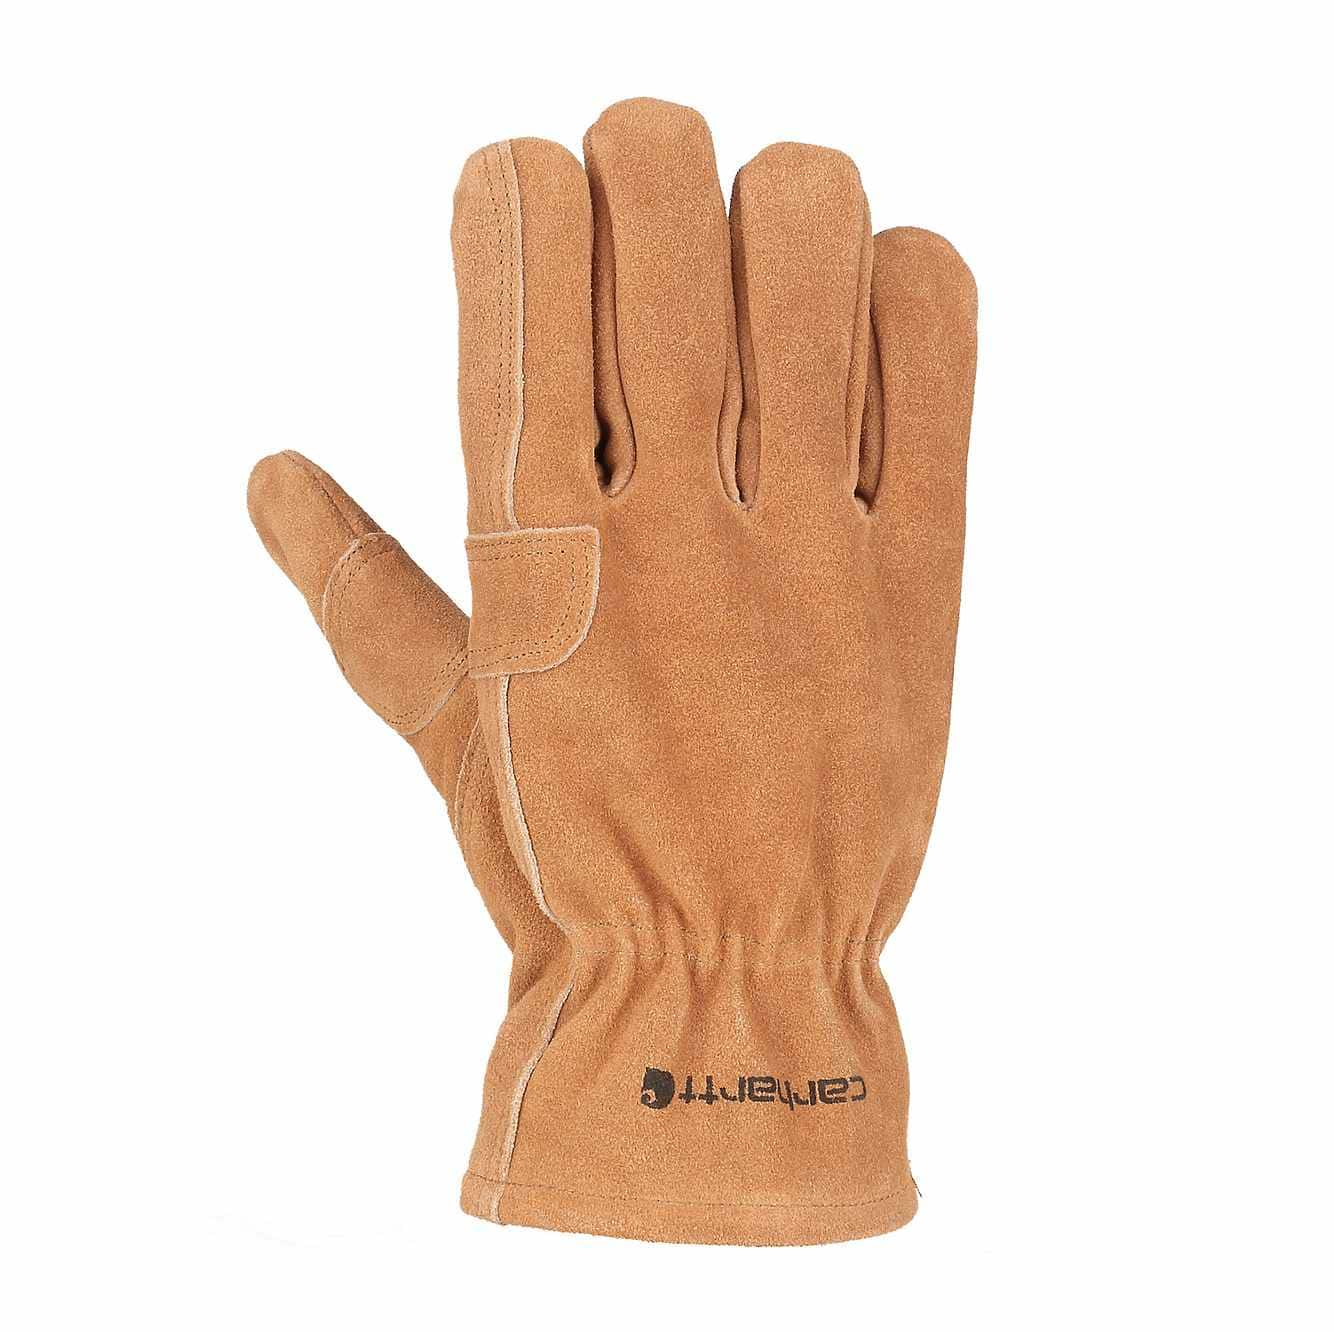 Picture of Pile Fencer Suede Work Glove in Carhartt Brown